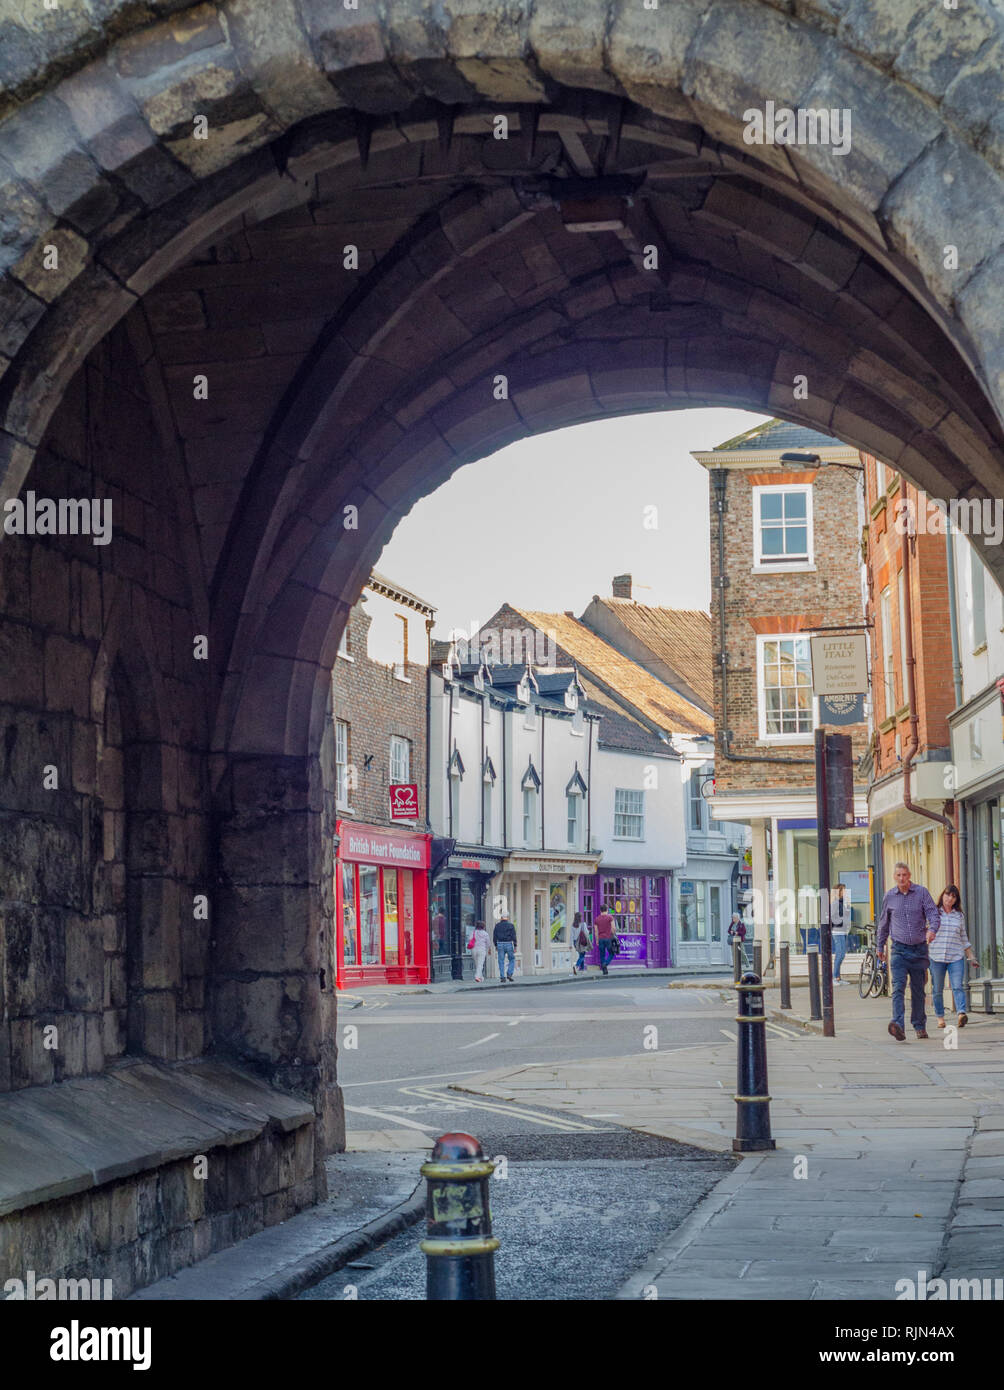 A closeup of a gatehouse in the walled fortifications in York, England. - Stock Image